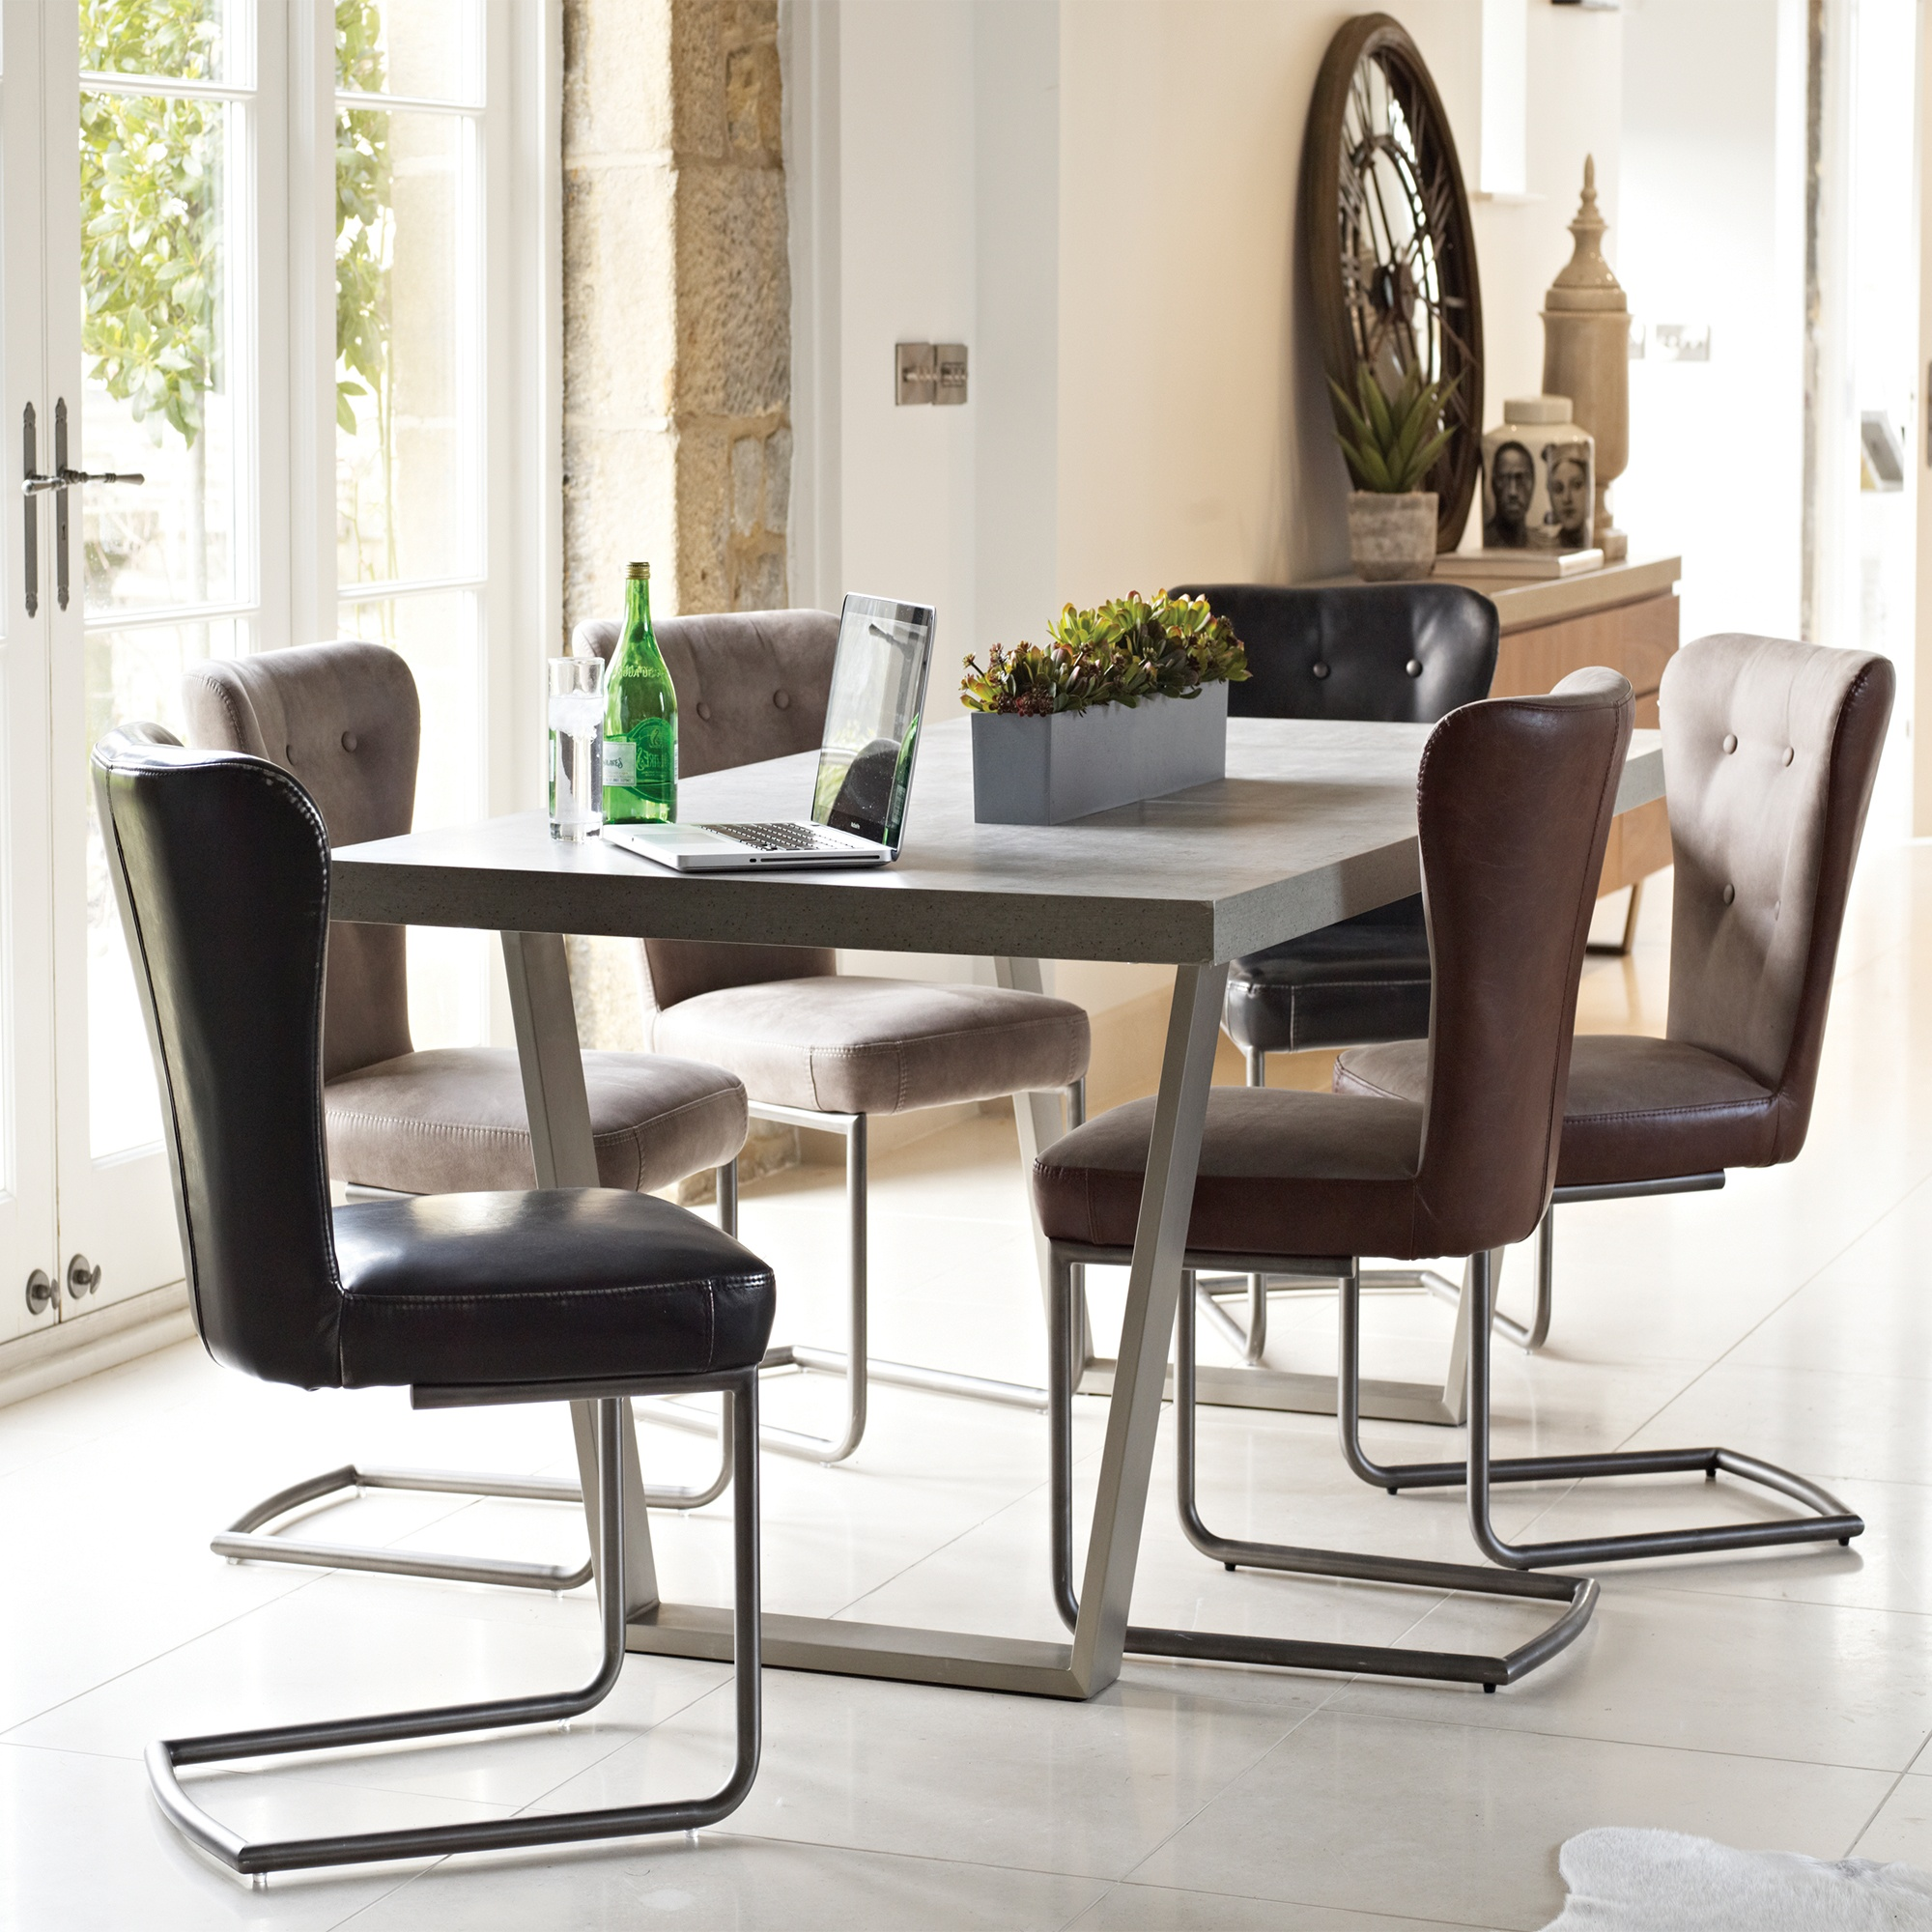 Oversized Dining Chair Cookes Collection Urban Large Dining Table And 6 Chairs